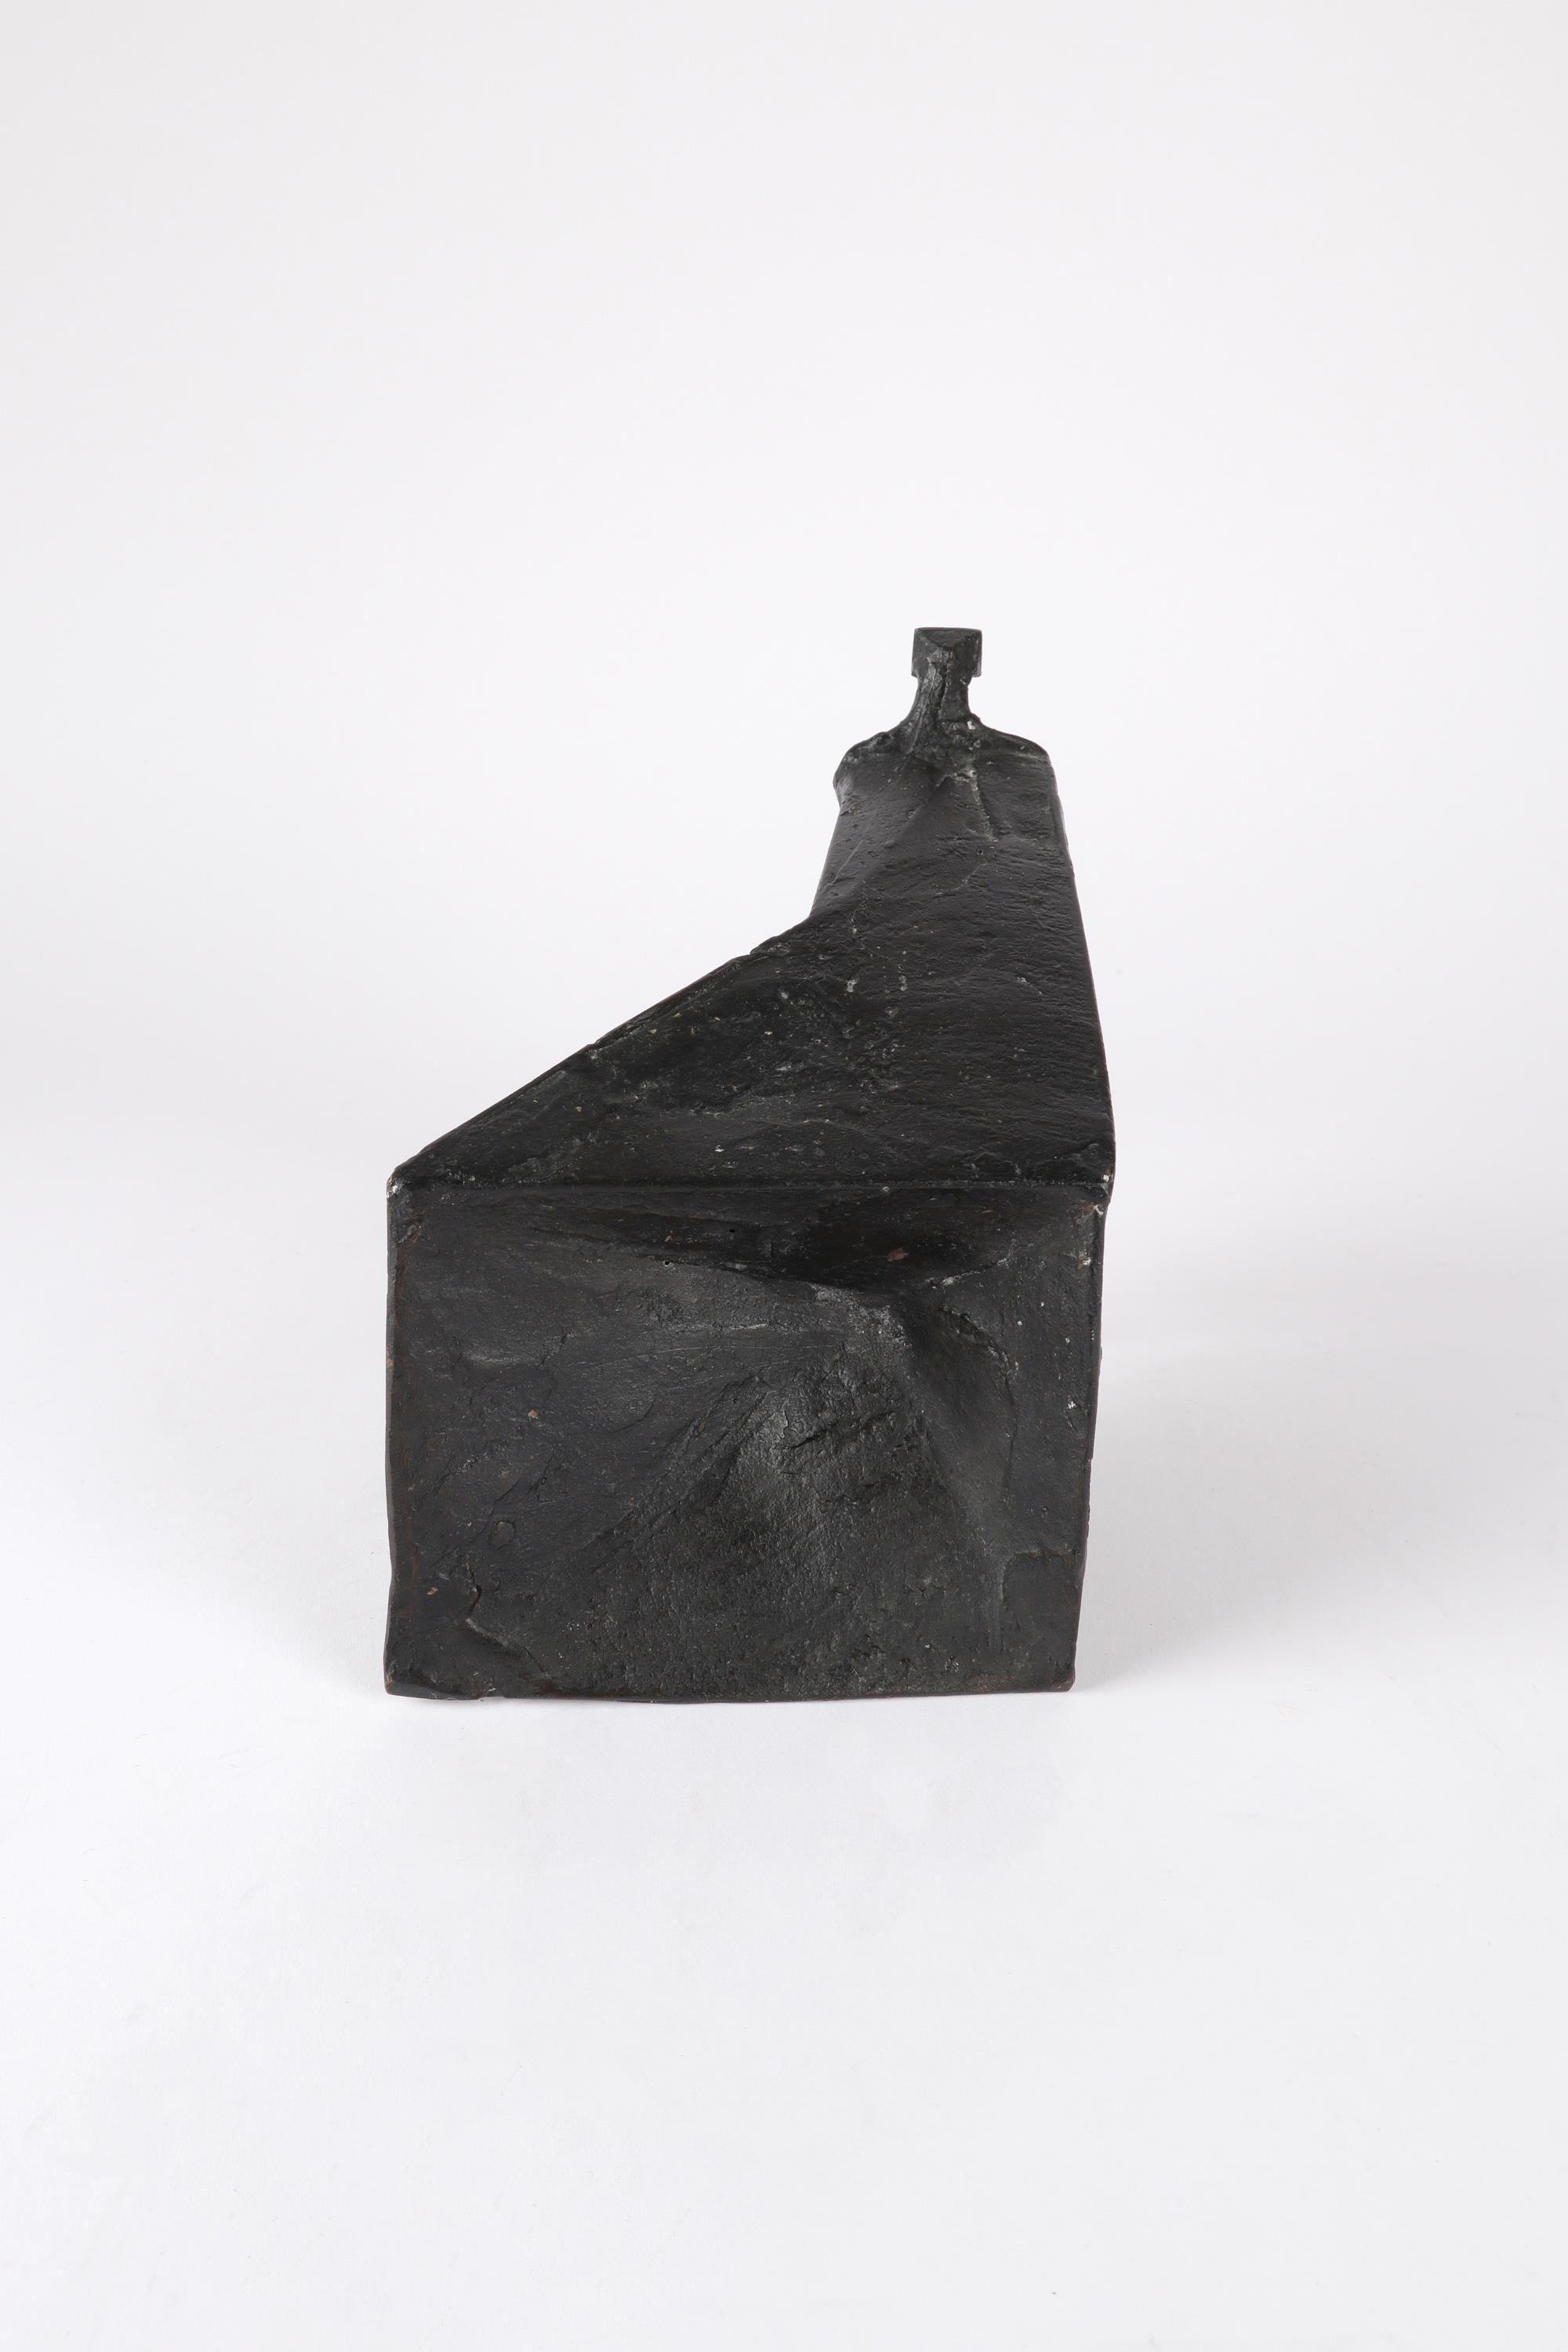 ‡Lynn Chadwick CBE, RA (1914-2003) Pair of Cloaked Figures III Each signed dated and numbered C/77/ - Image 9 of 22